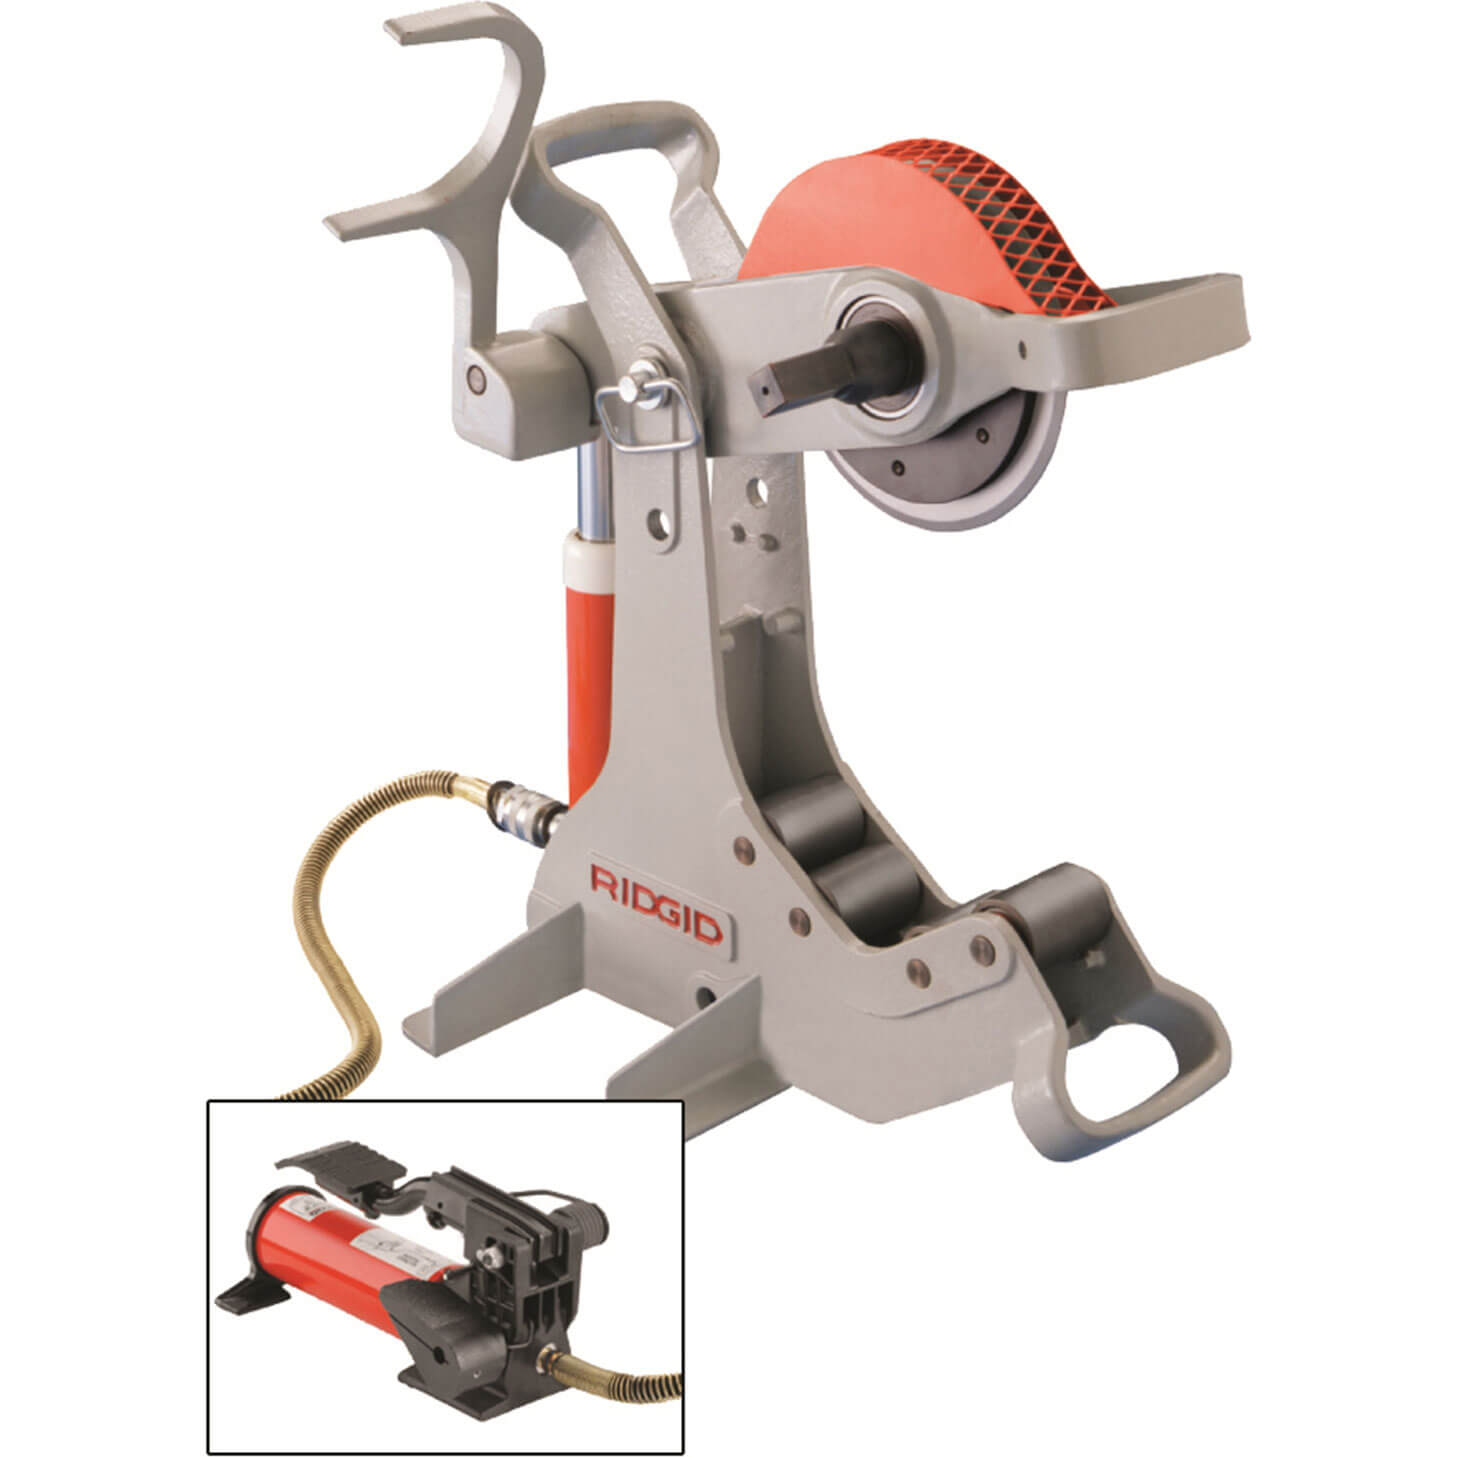 Image of Ridgid 258 Power Pipe Cutter & No.700 Powerdrive 110v